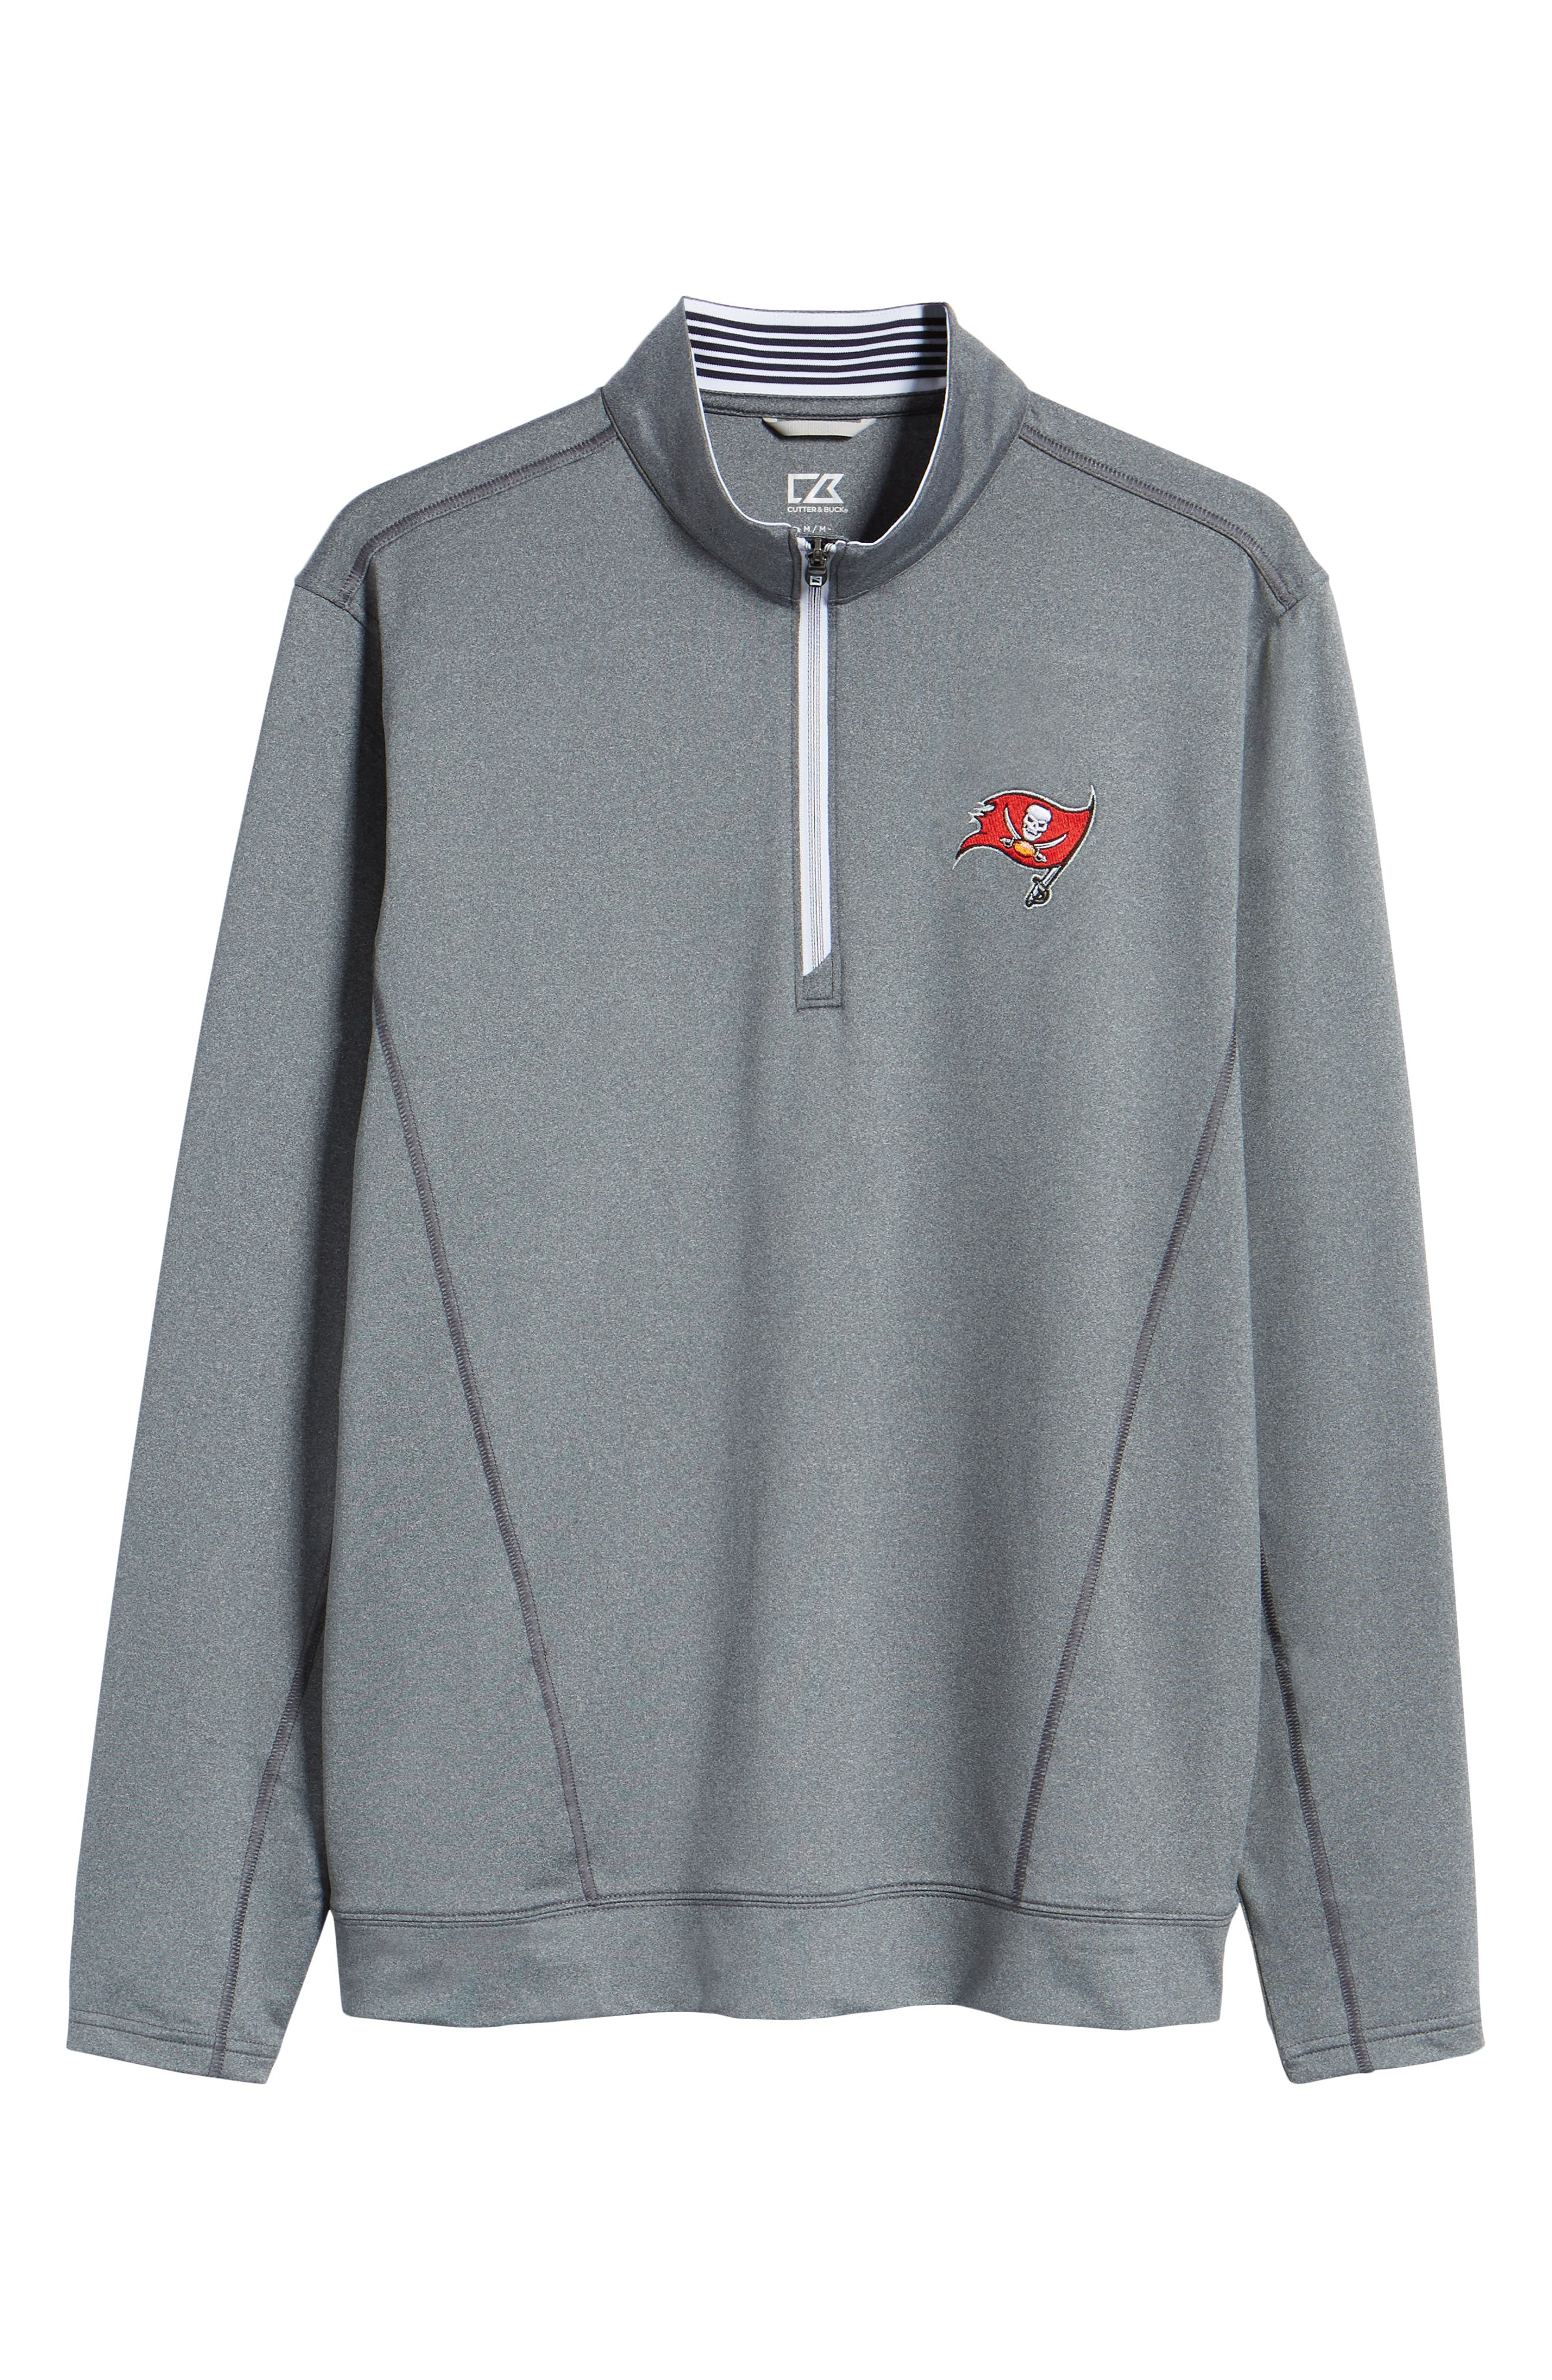 Endurance Tampa Bay Buccaneers Regular Fit Pullover,                             Alternate thumbnail 6, color,                             CHARCOAL HEATHER